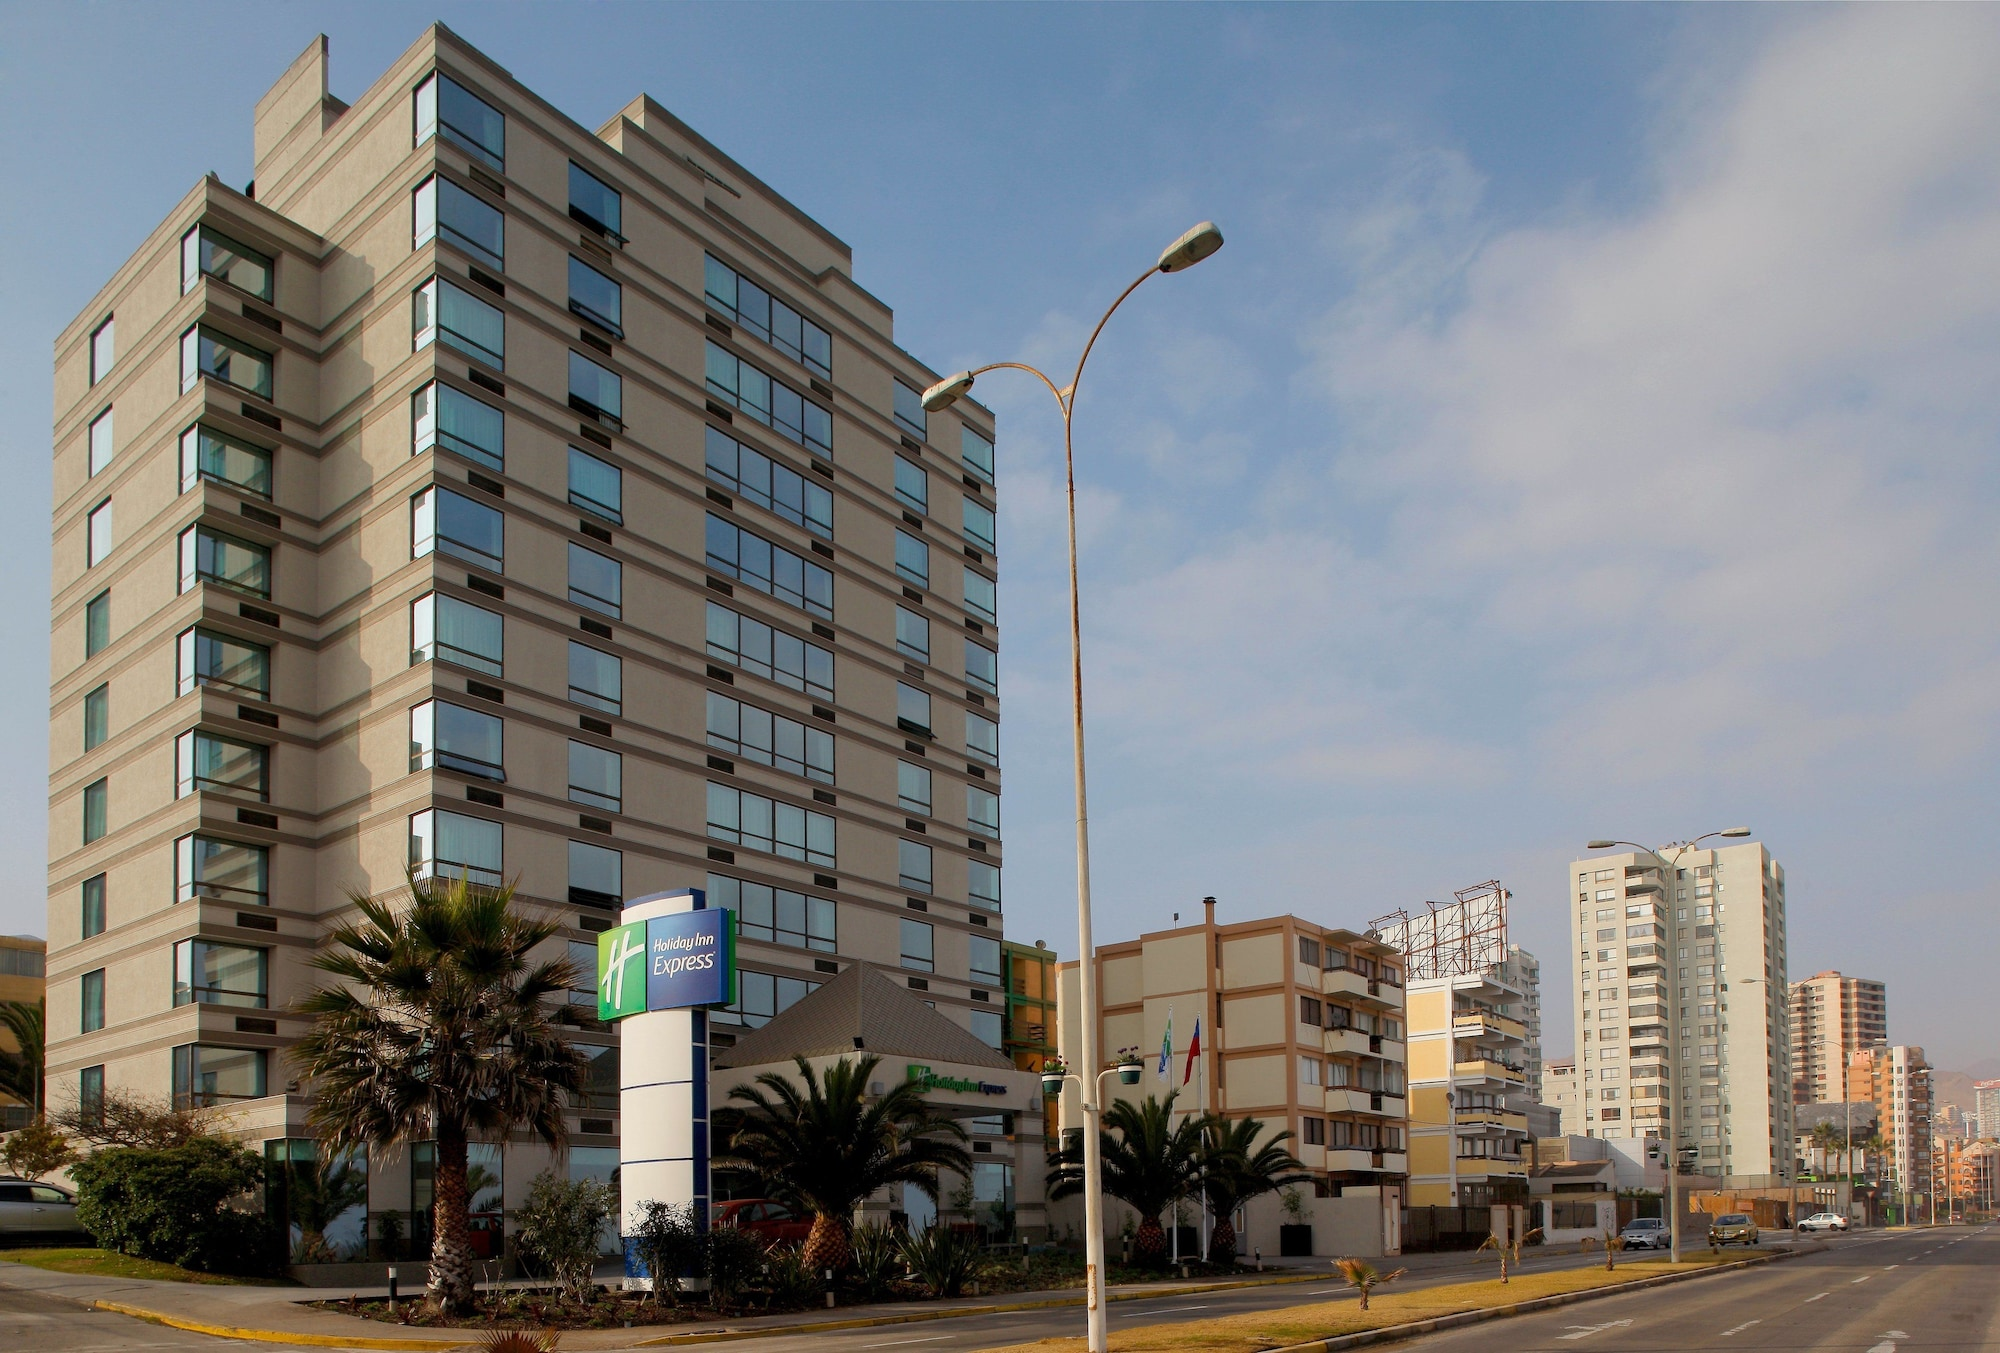 Holiday Inn Express Antofagasta, Antofagasta